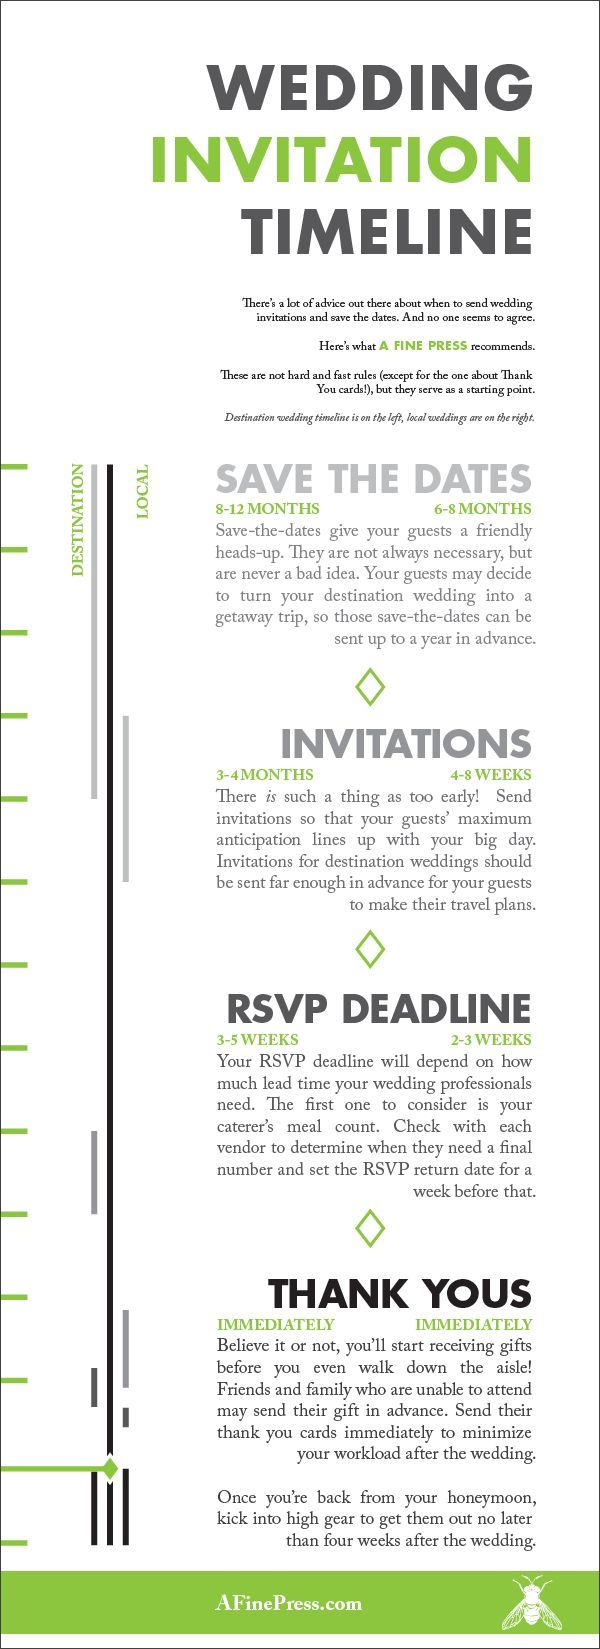 When Should Save The Dates Be Sent: Are You Wondering When To Send Your Wedding Invitations